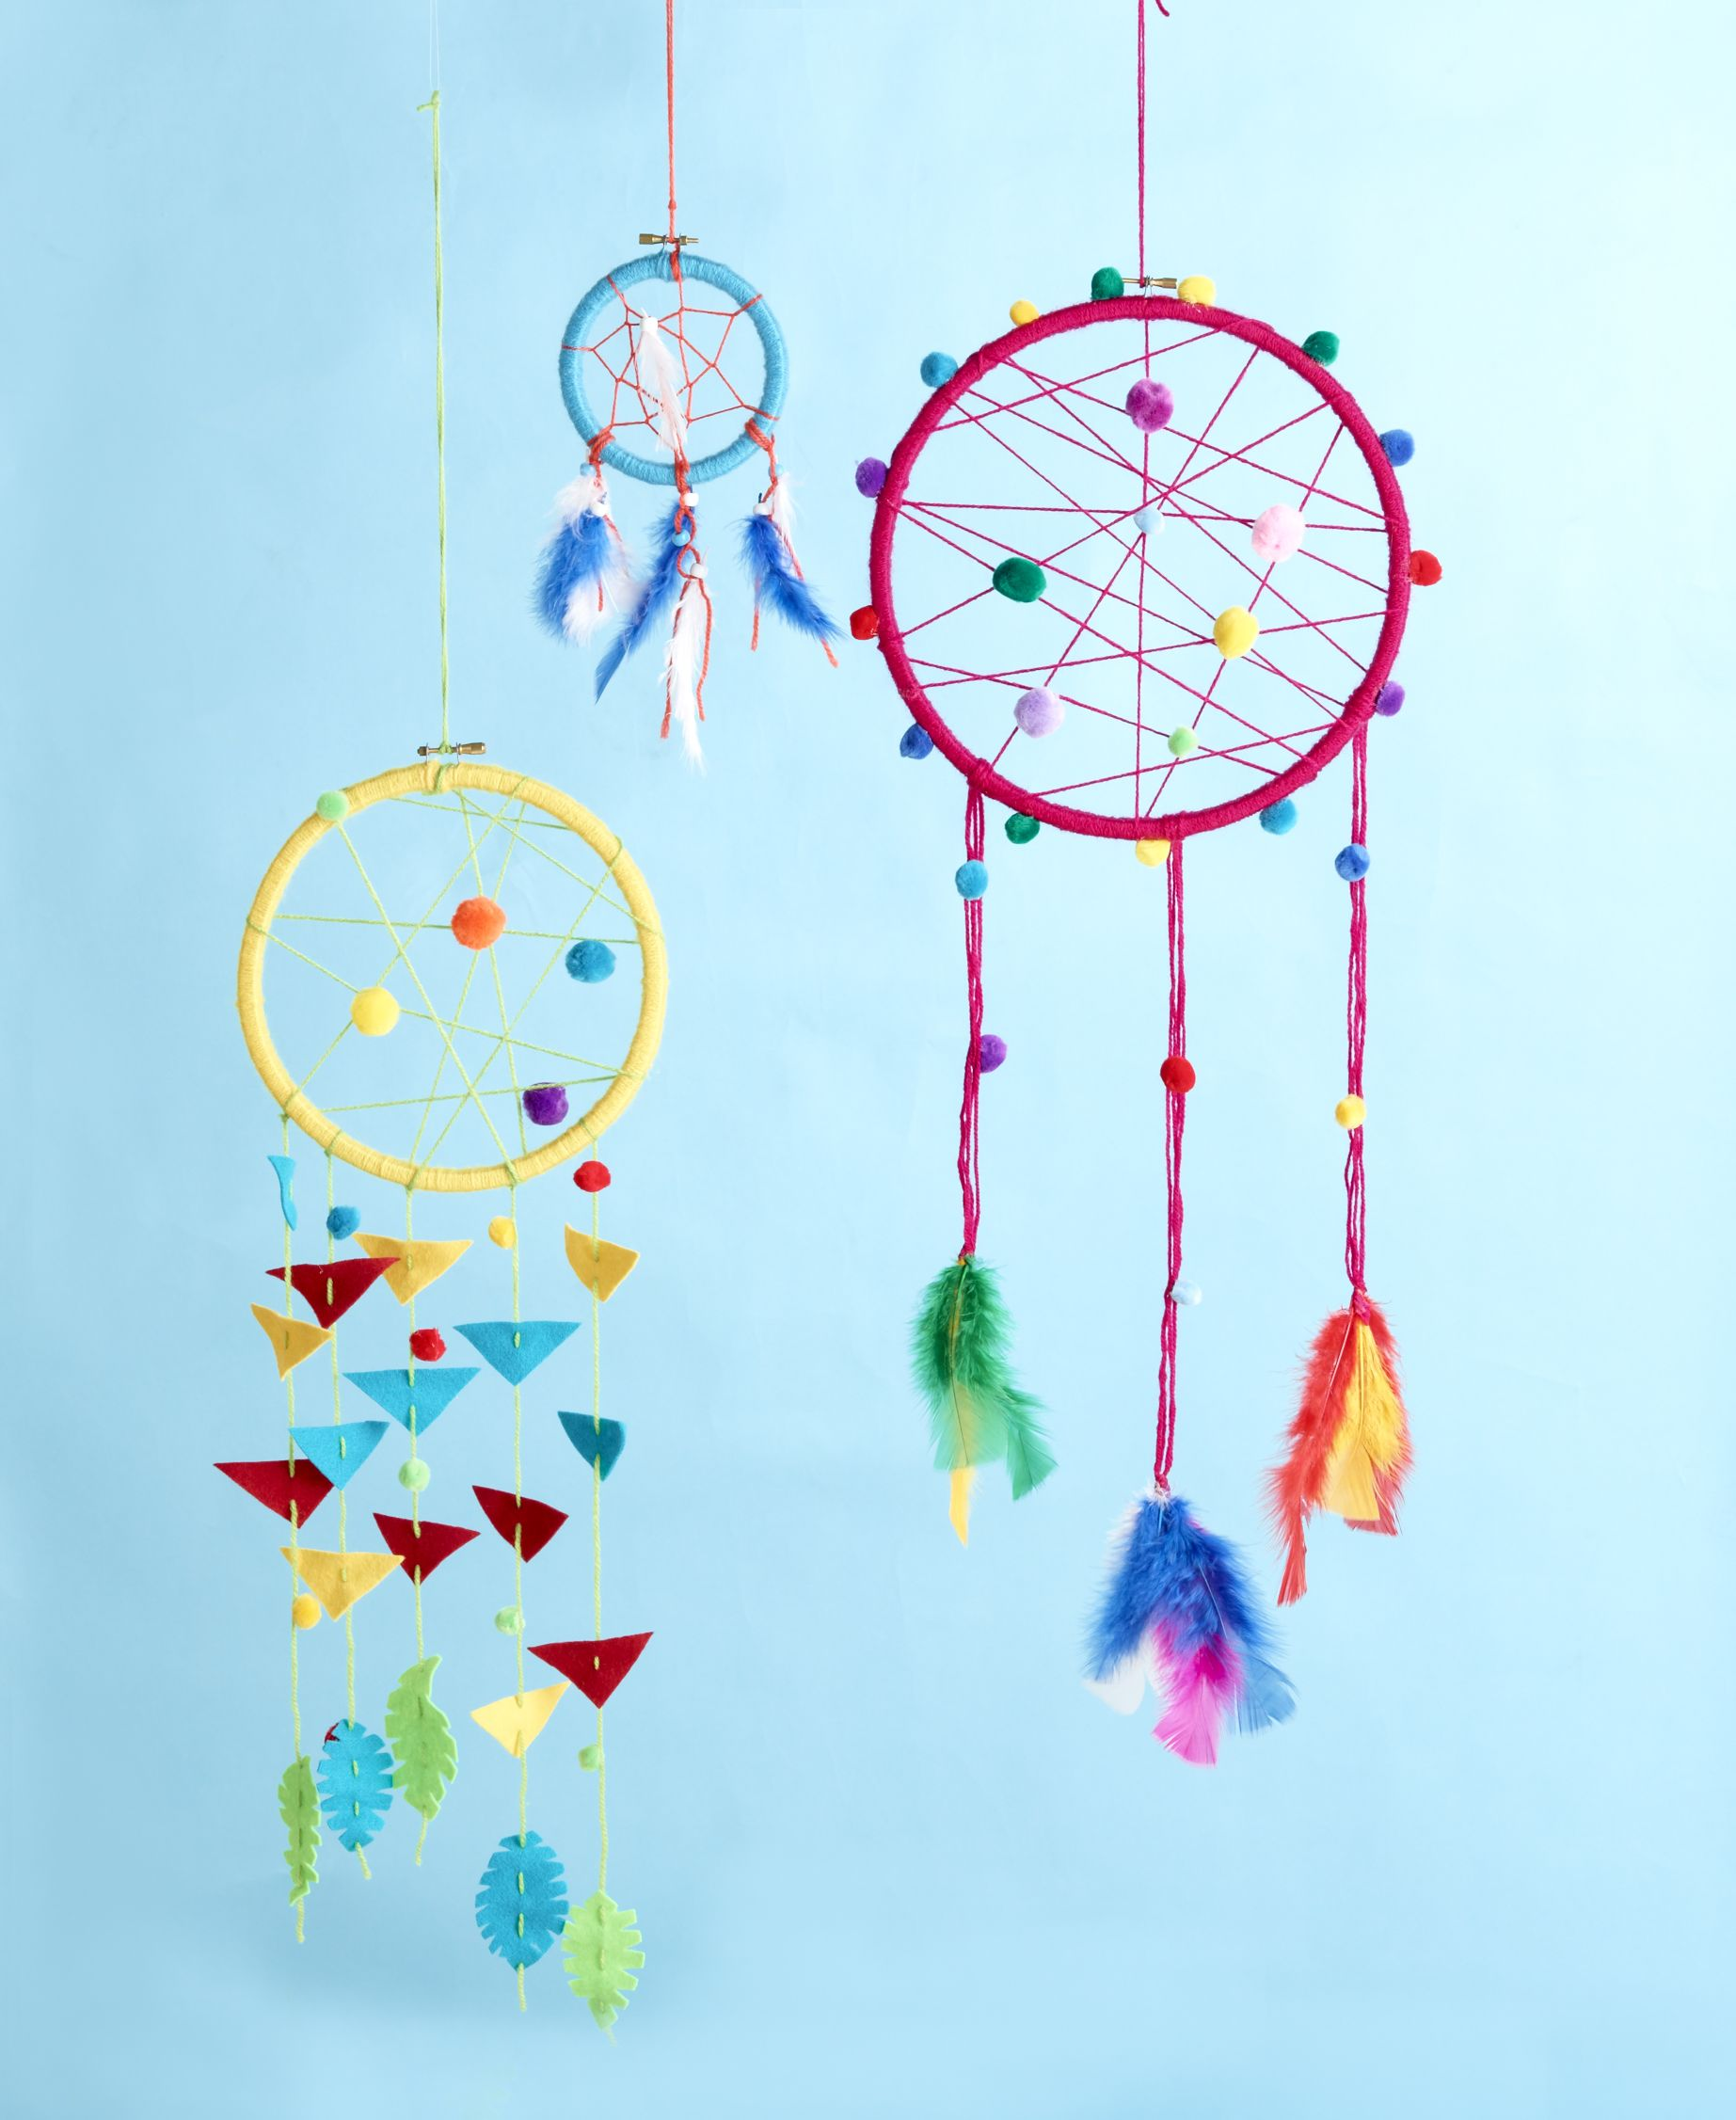 Dreamcatchers craftty things Diy dream catcher for